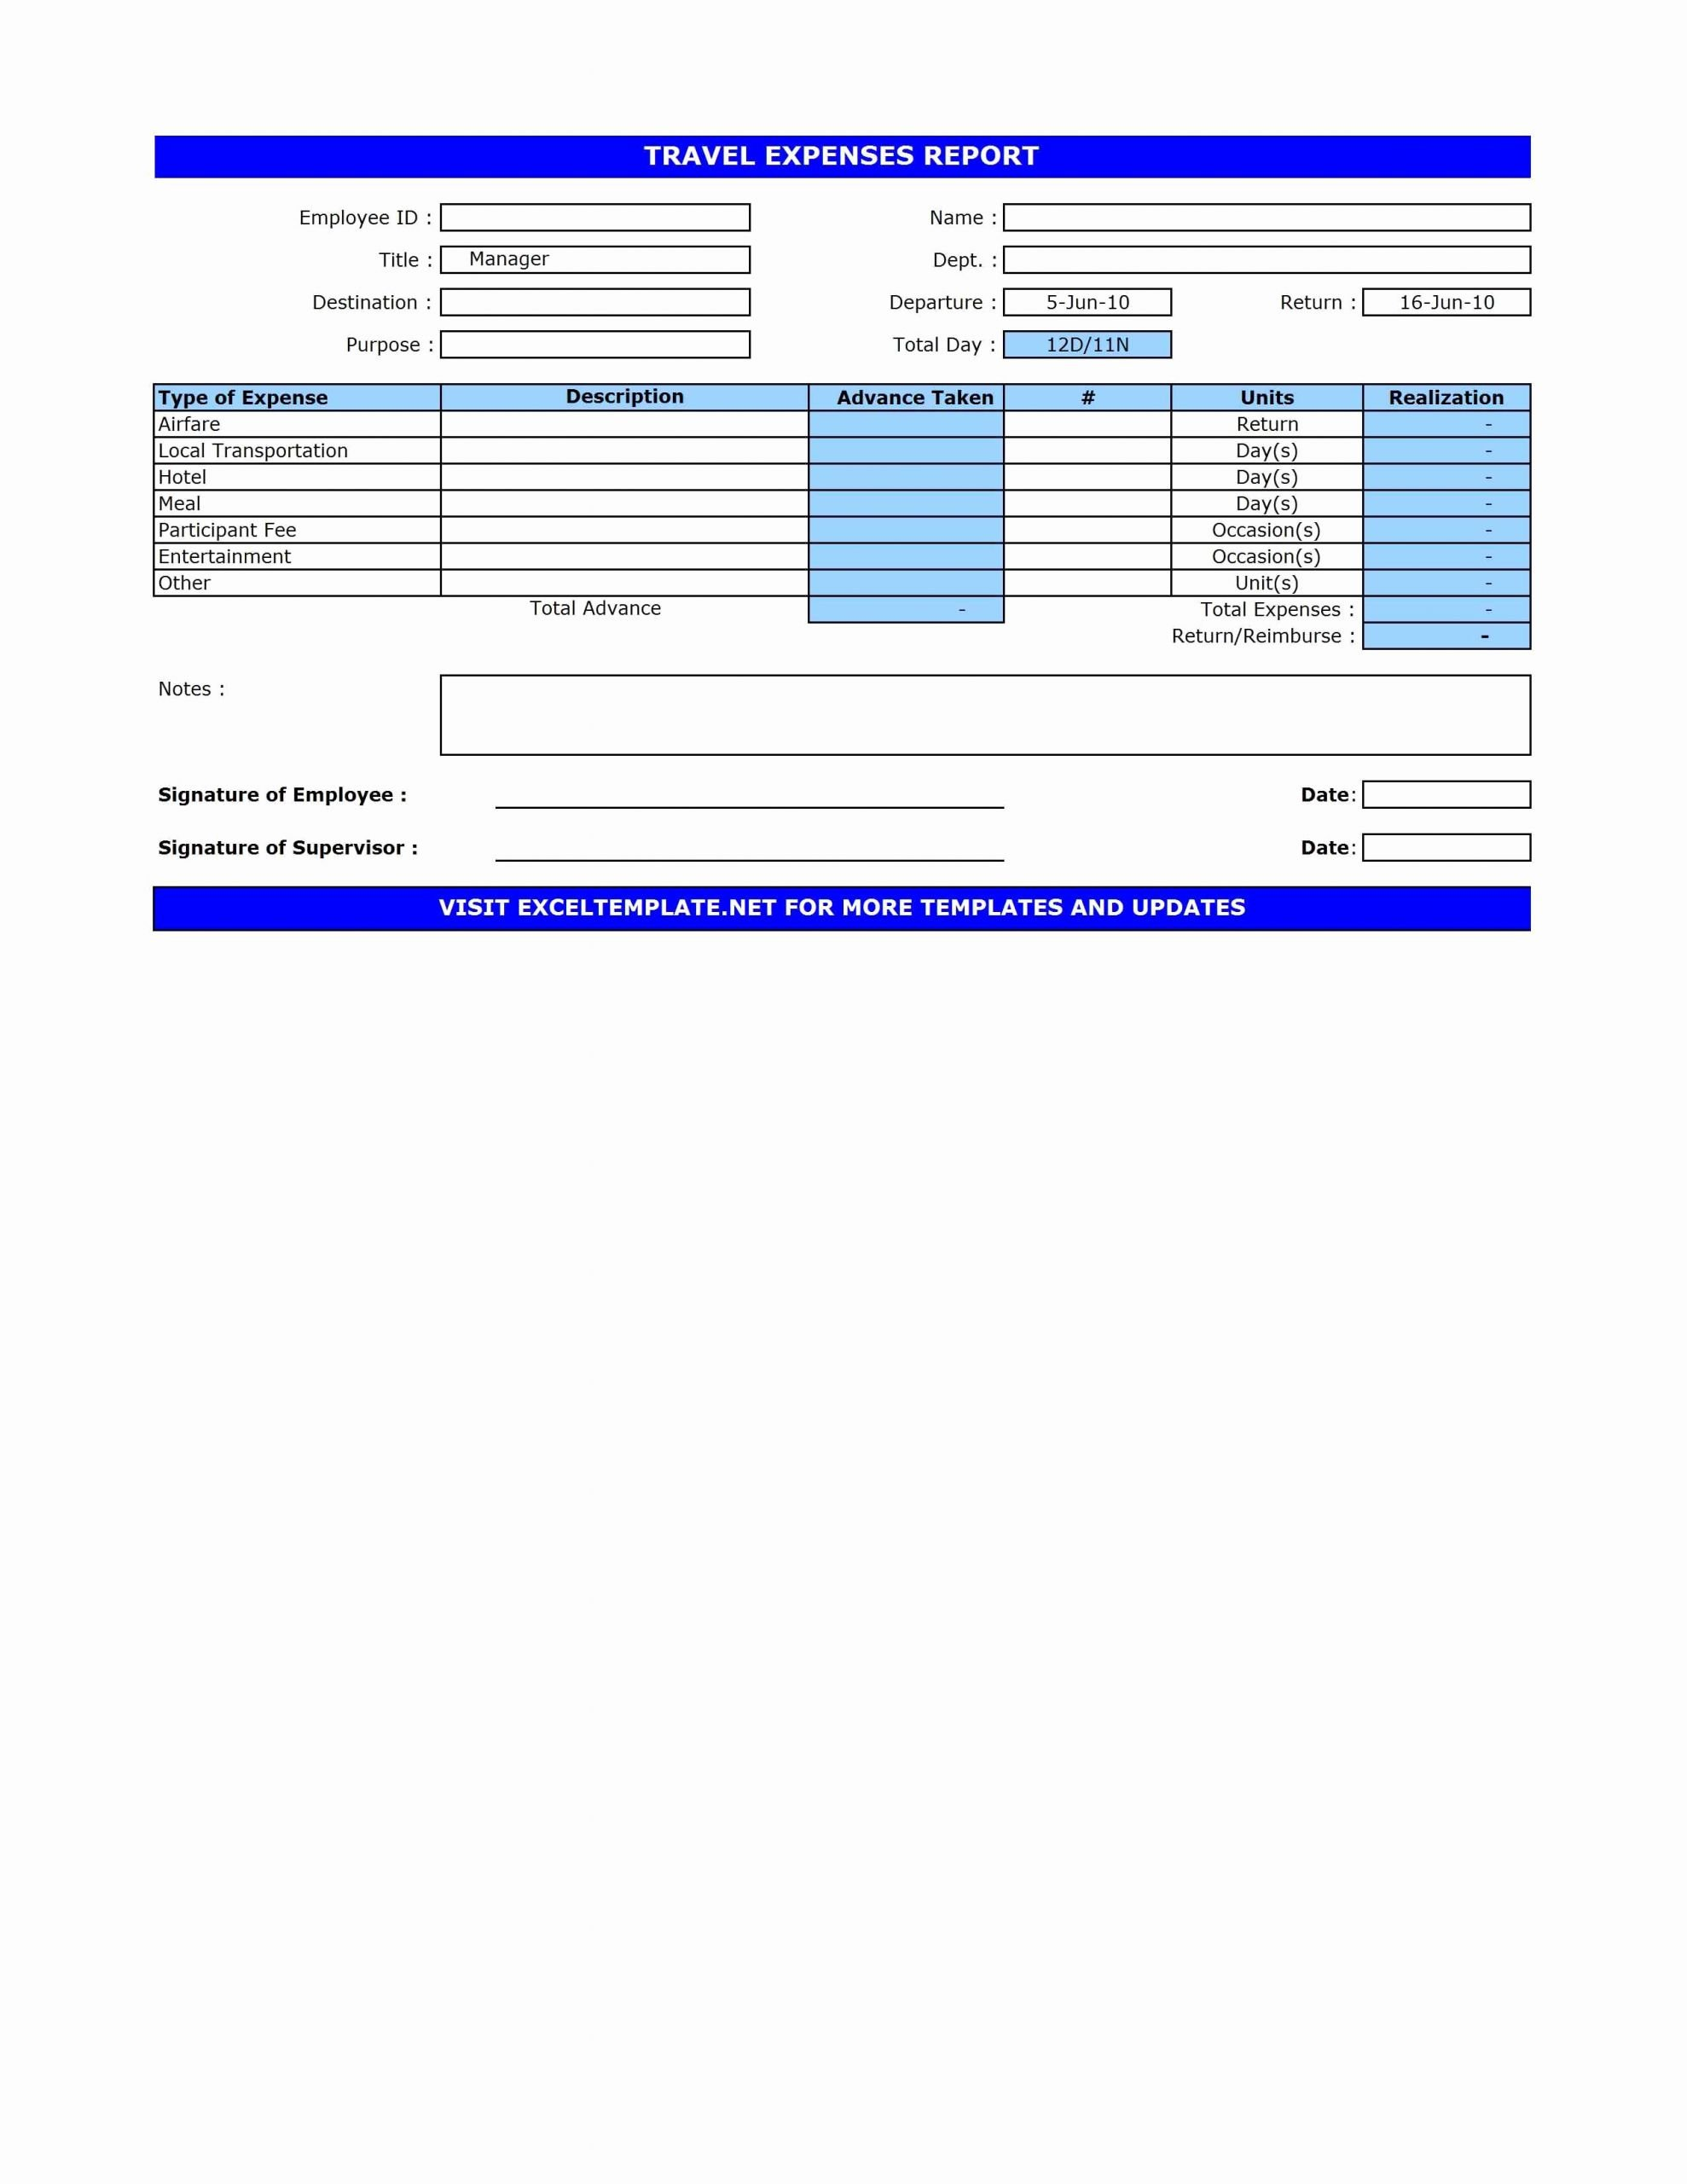 Travel Expense form Template Beautiful Travel Expenses Report Template